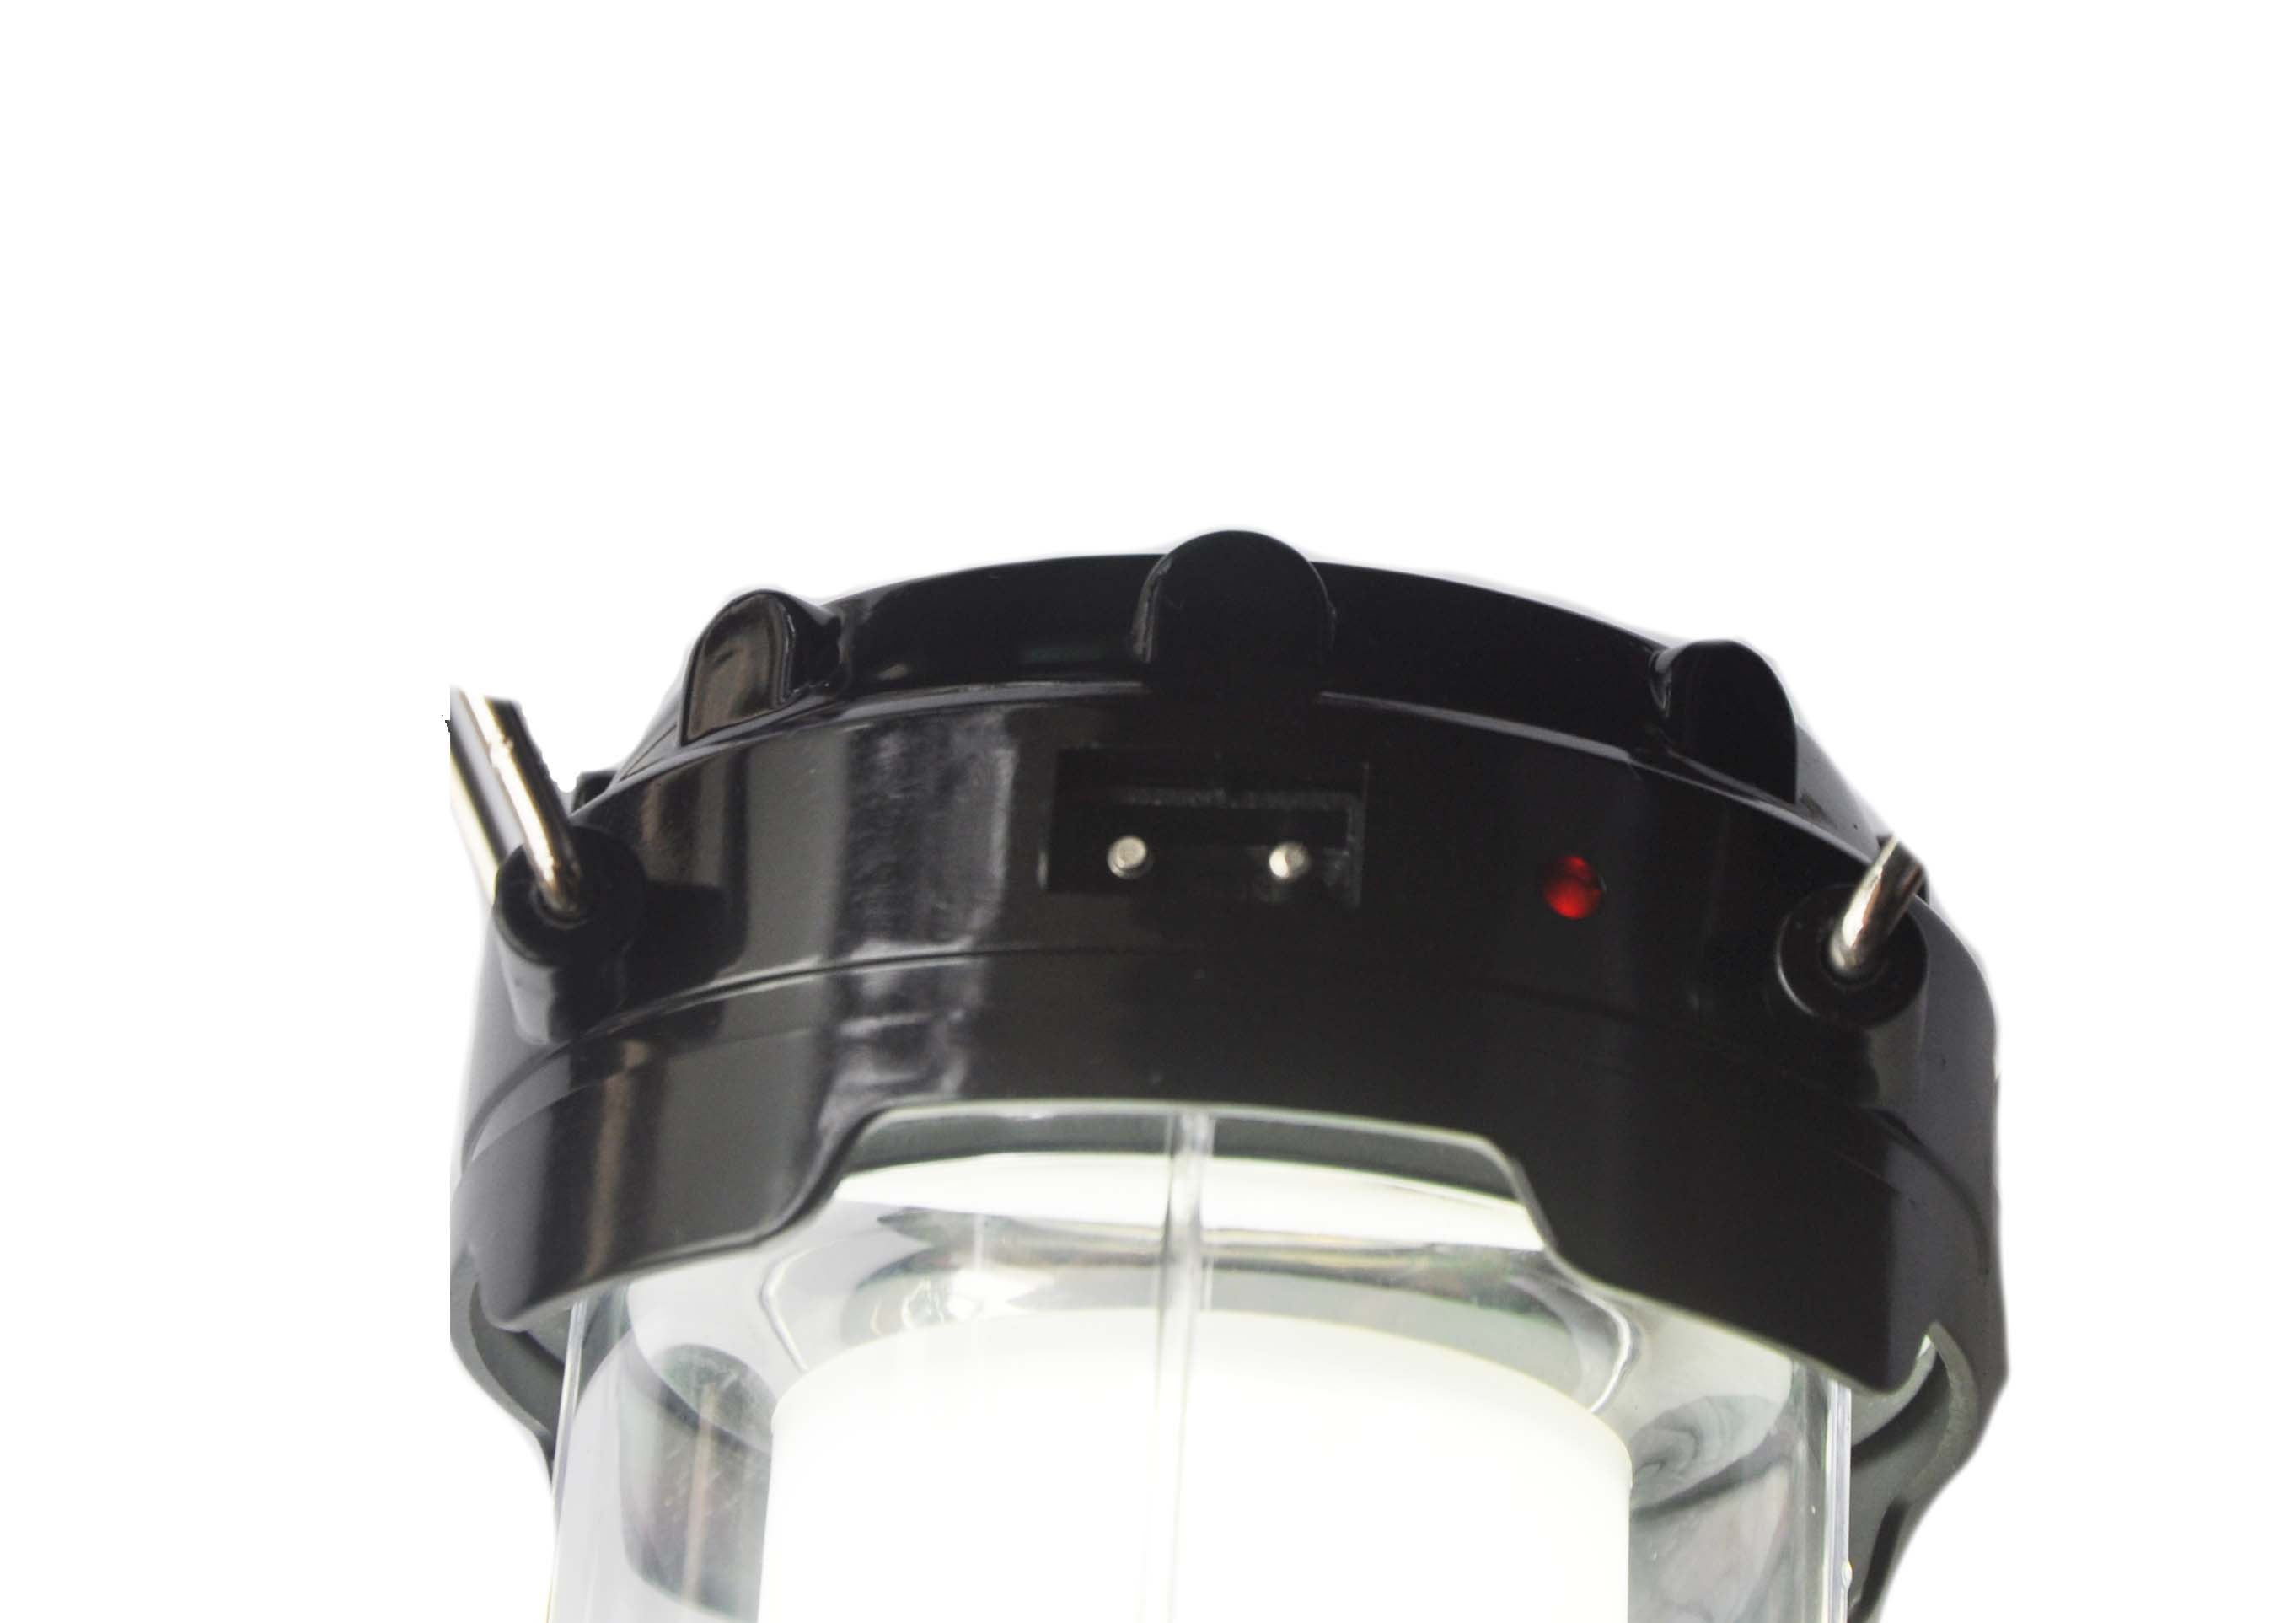 CLC-1611-COB SOLAR CAMPING LIGHT